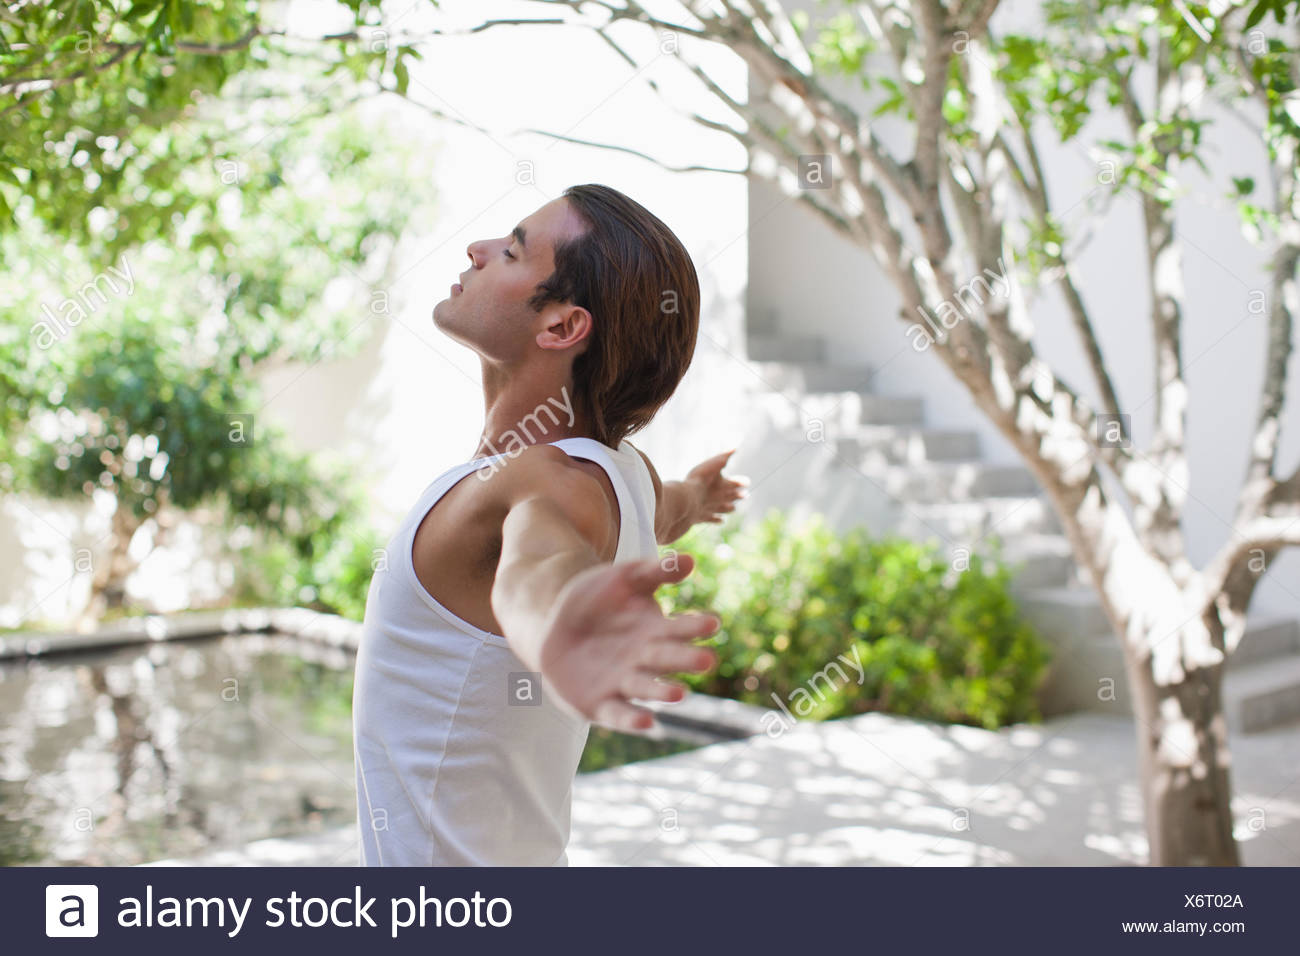 Man standing with arms outstretched - Stock Image